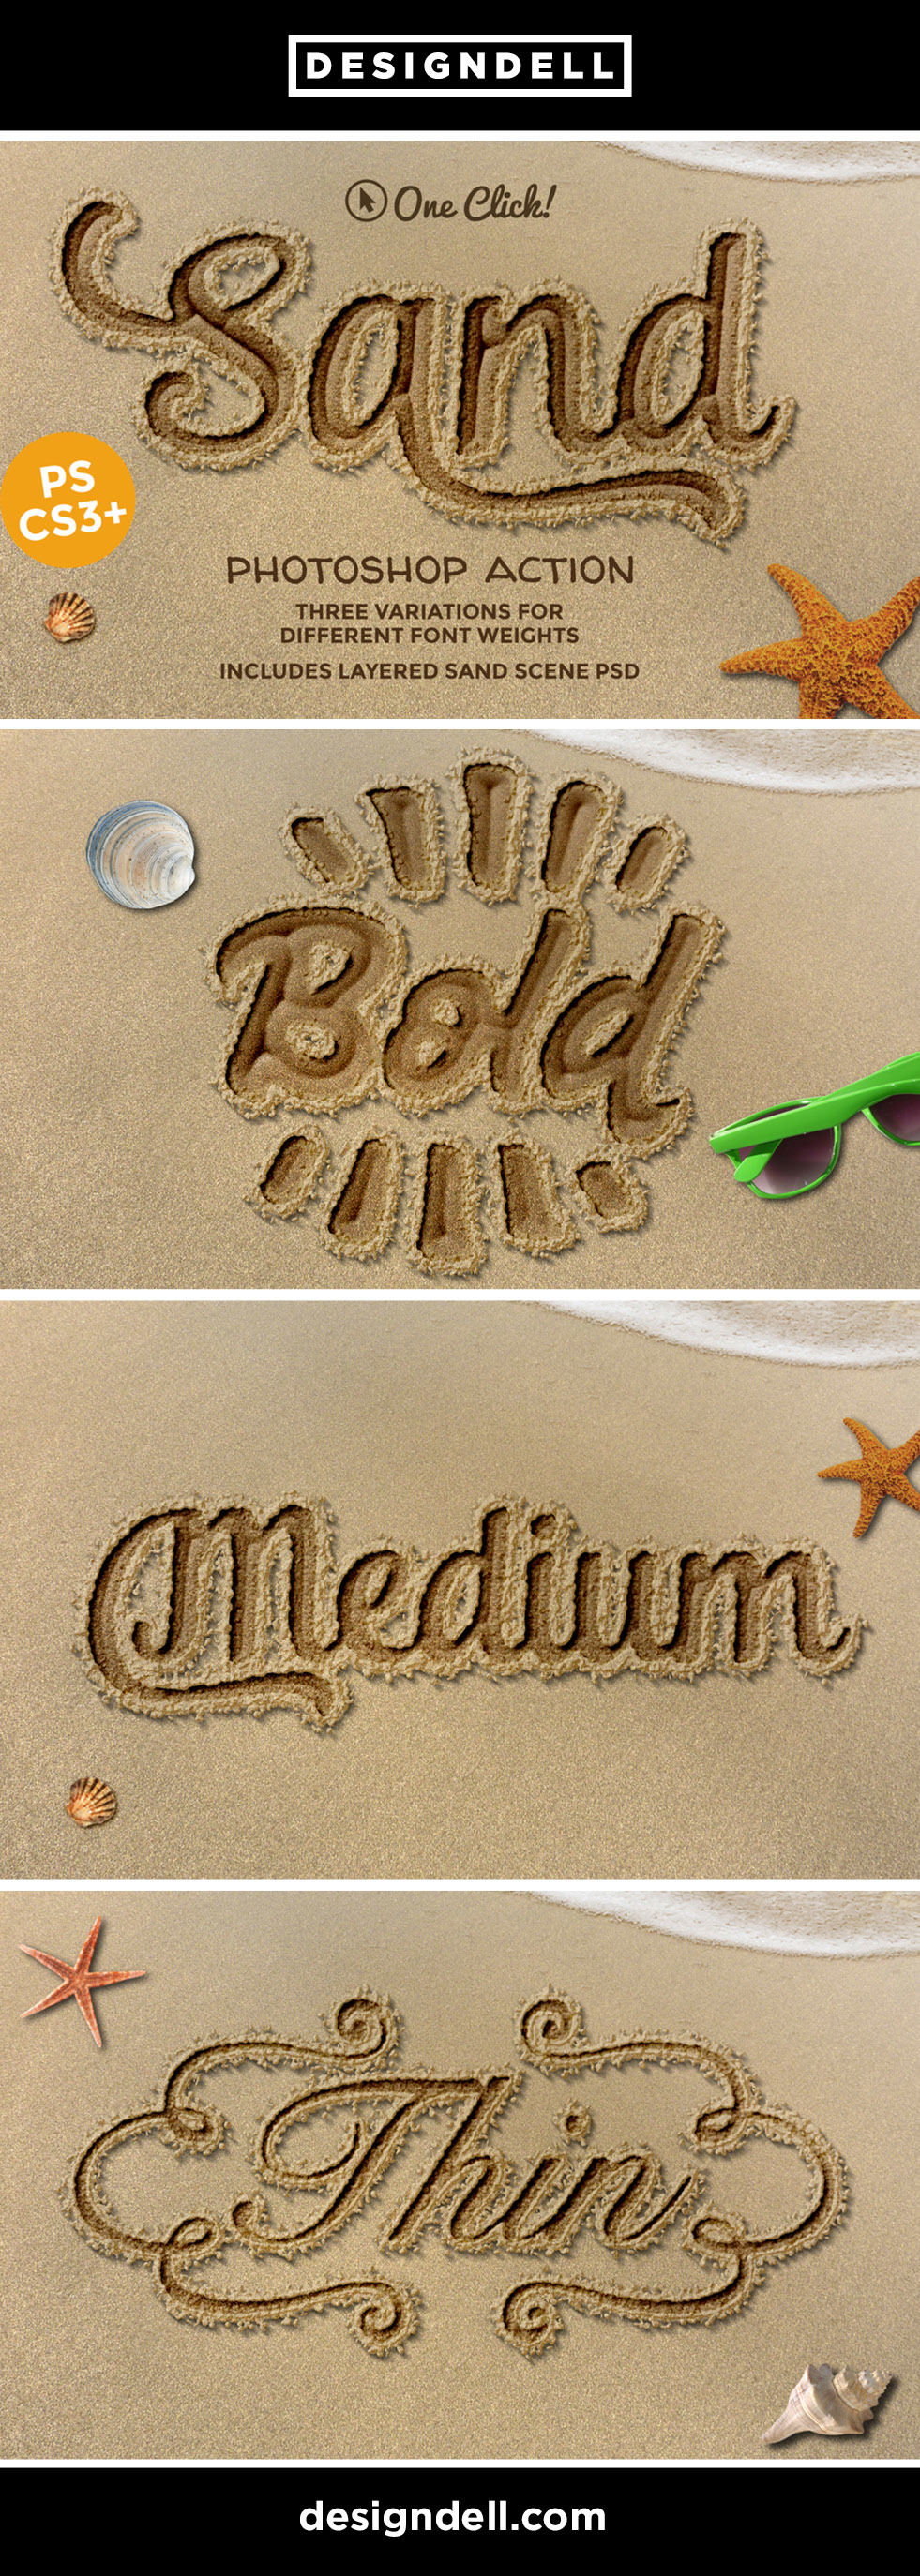 Sand Photoshop Text Effect - Write in the sand with this PSD Action